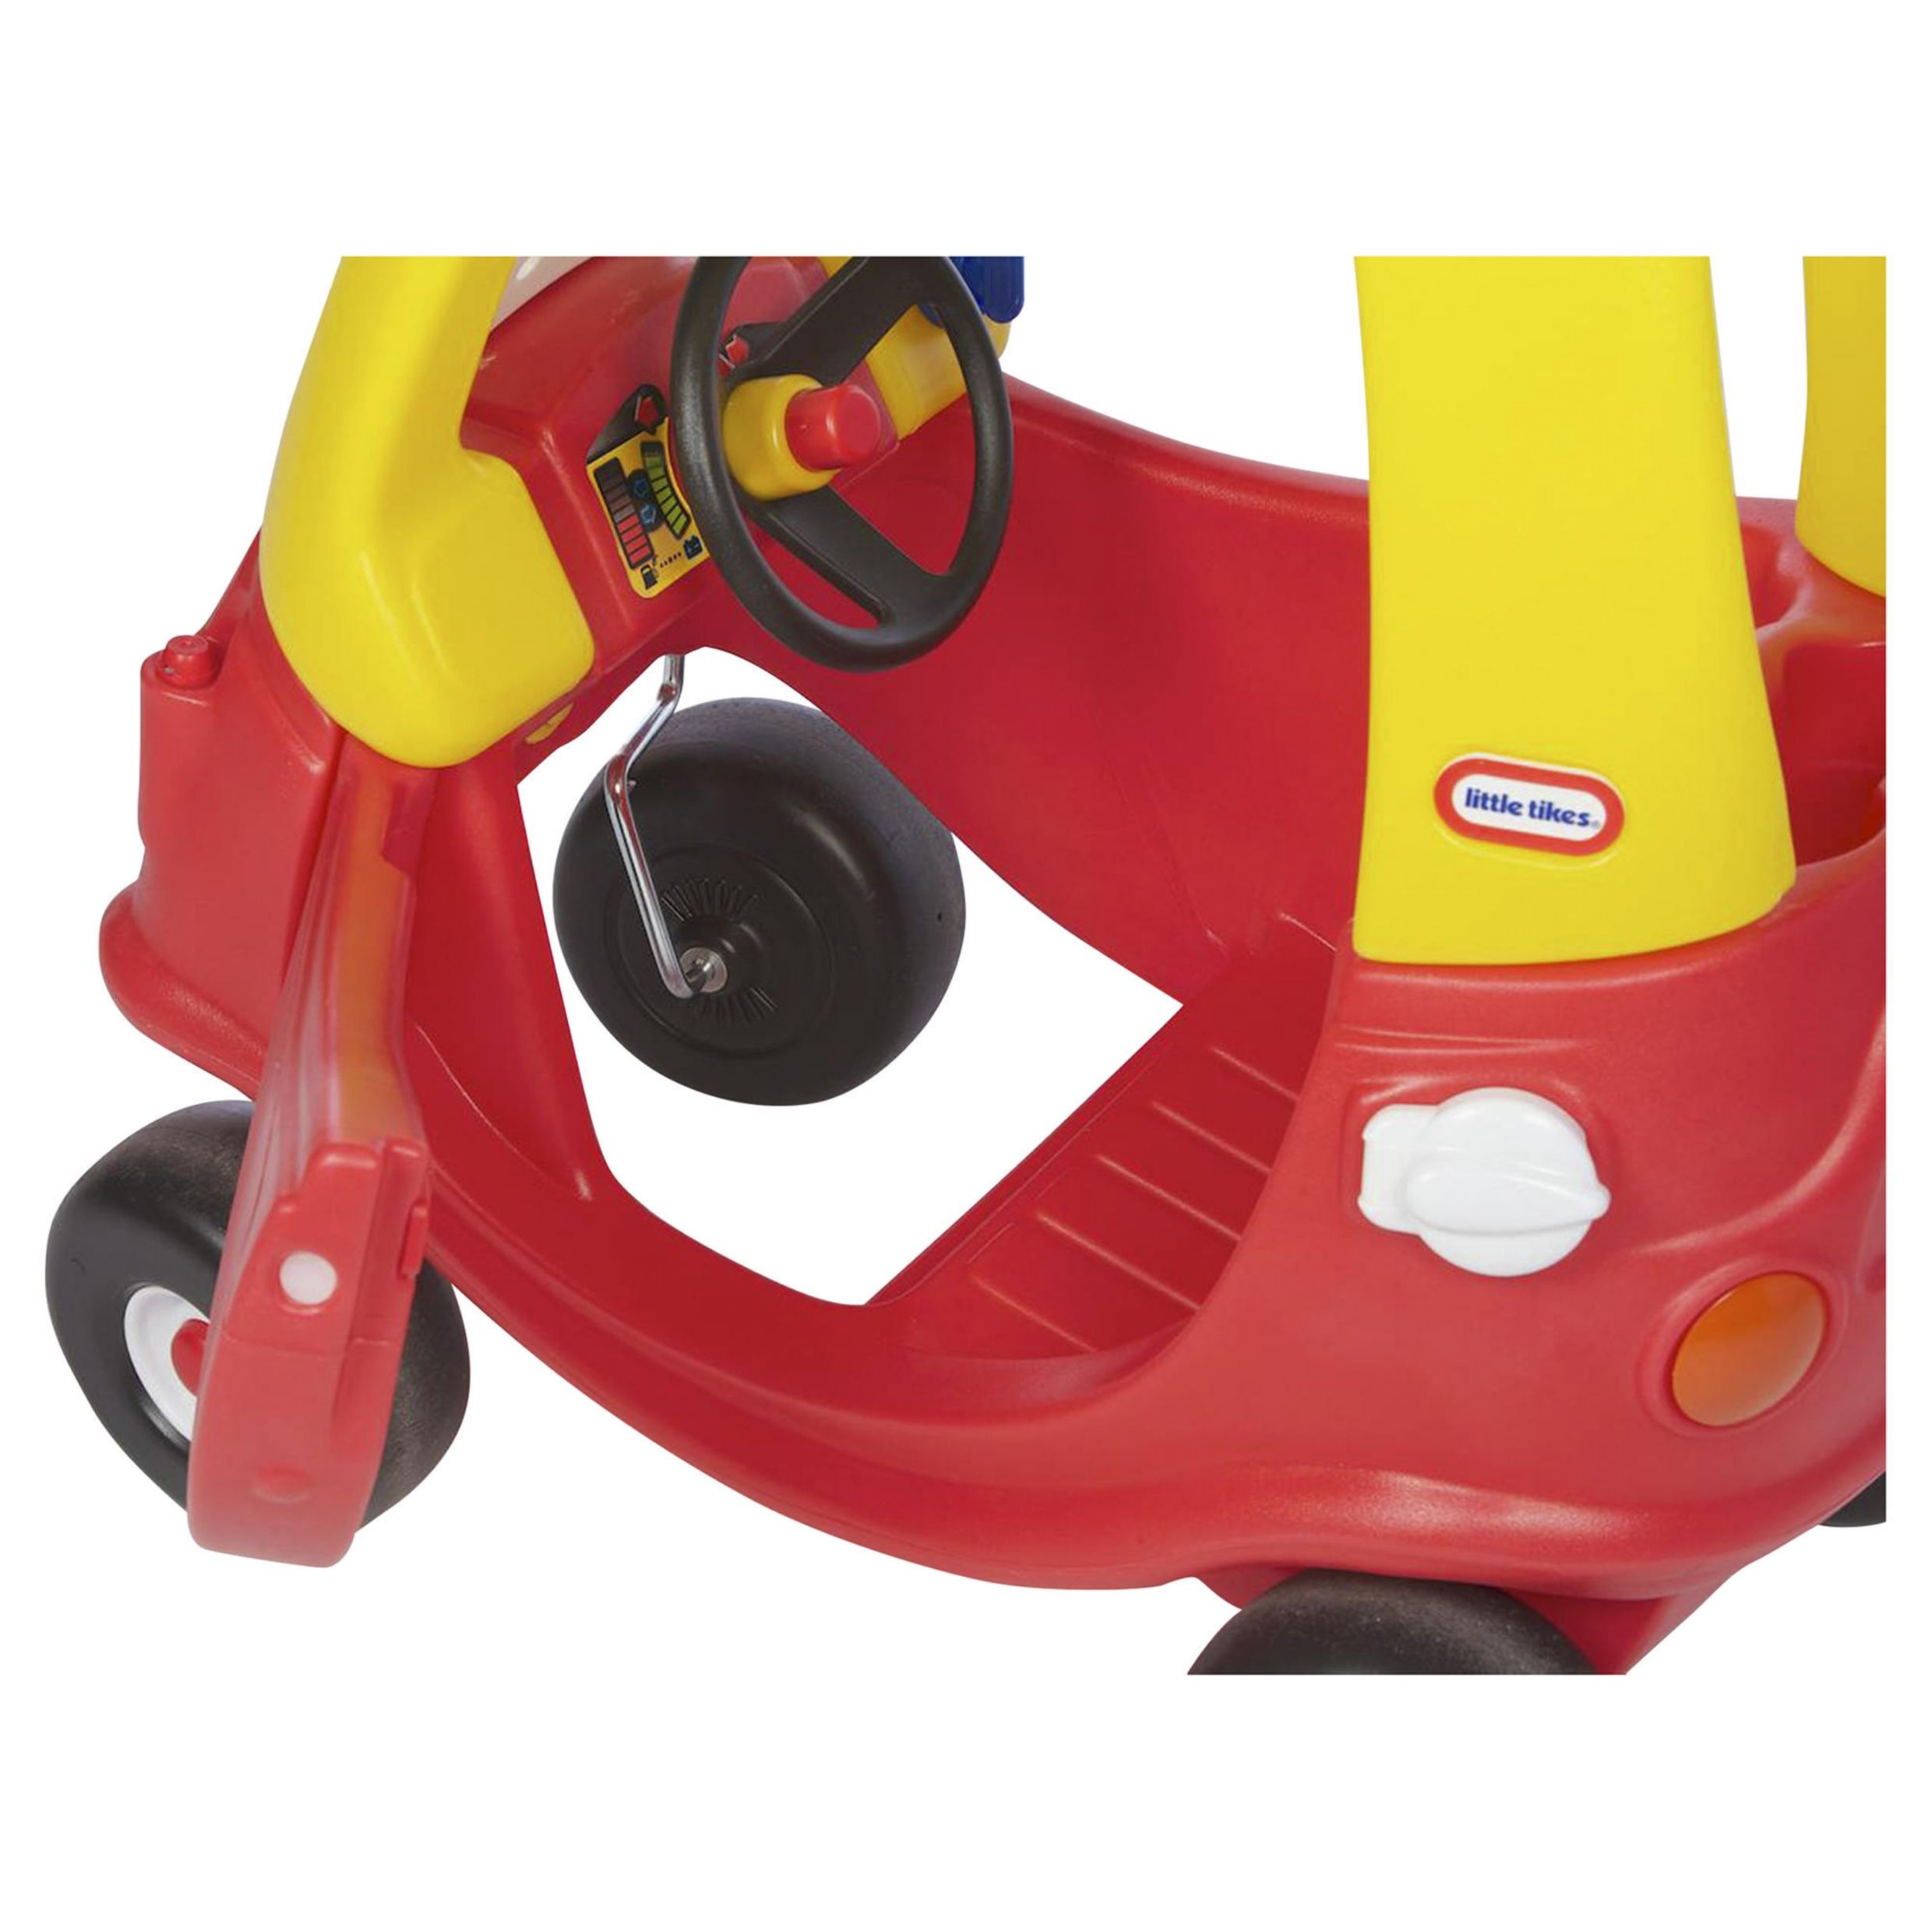 Little Tikes Red Cozy Coupe Auto Della Polizia Giro Su